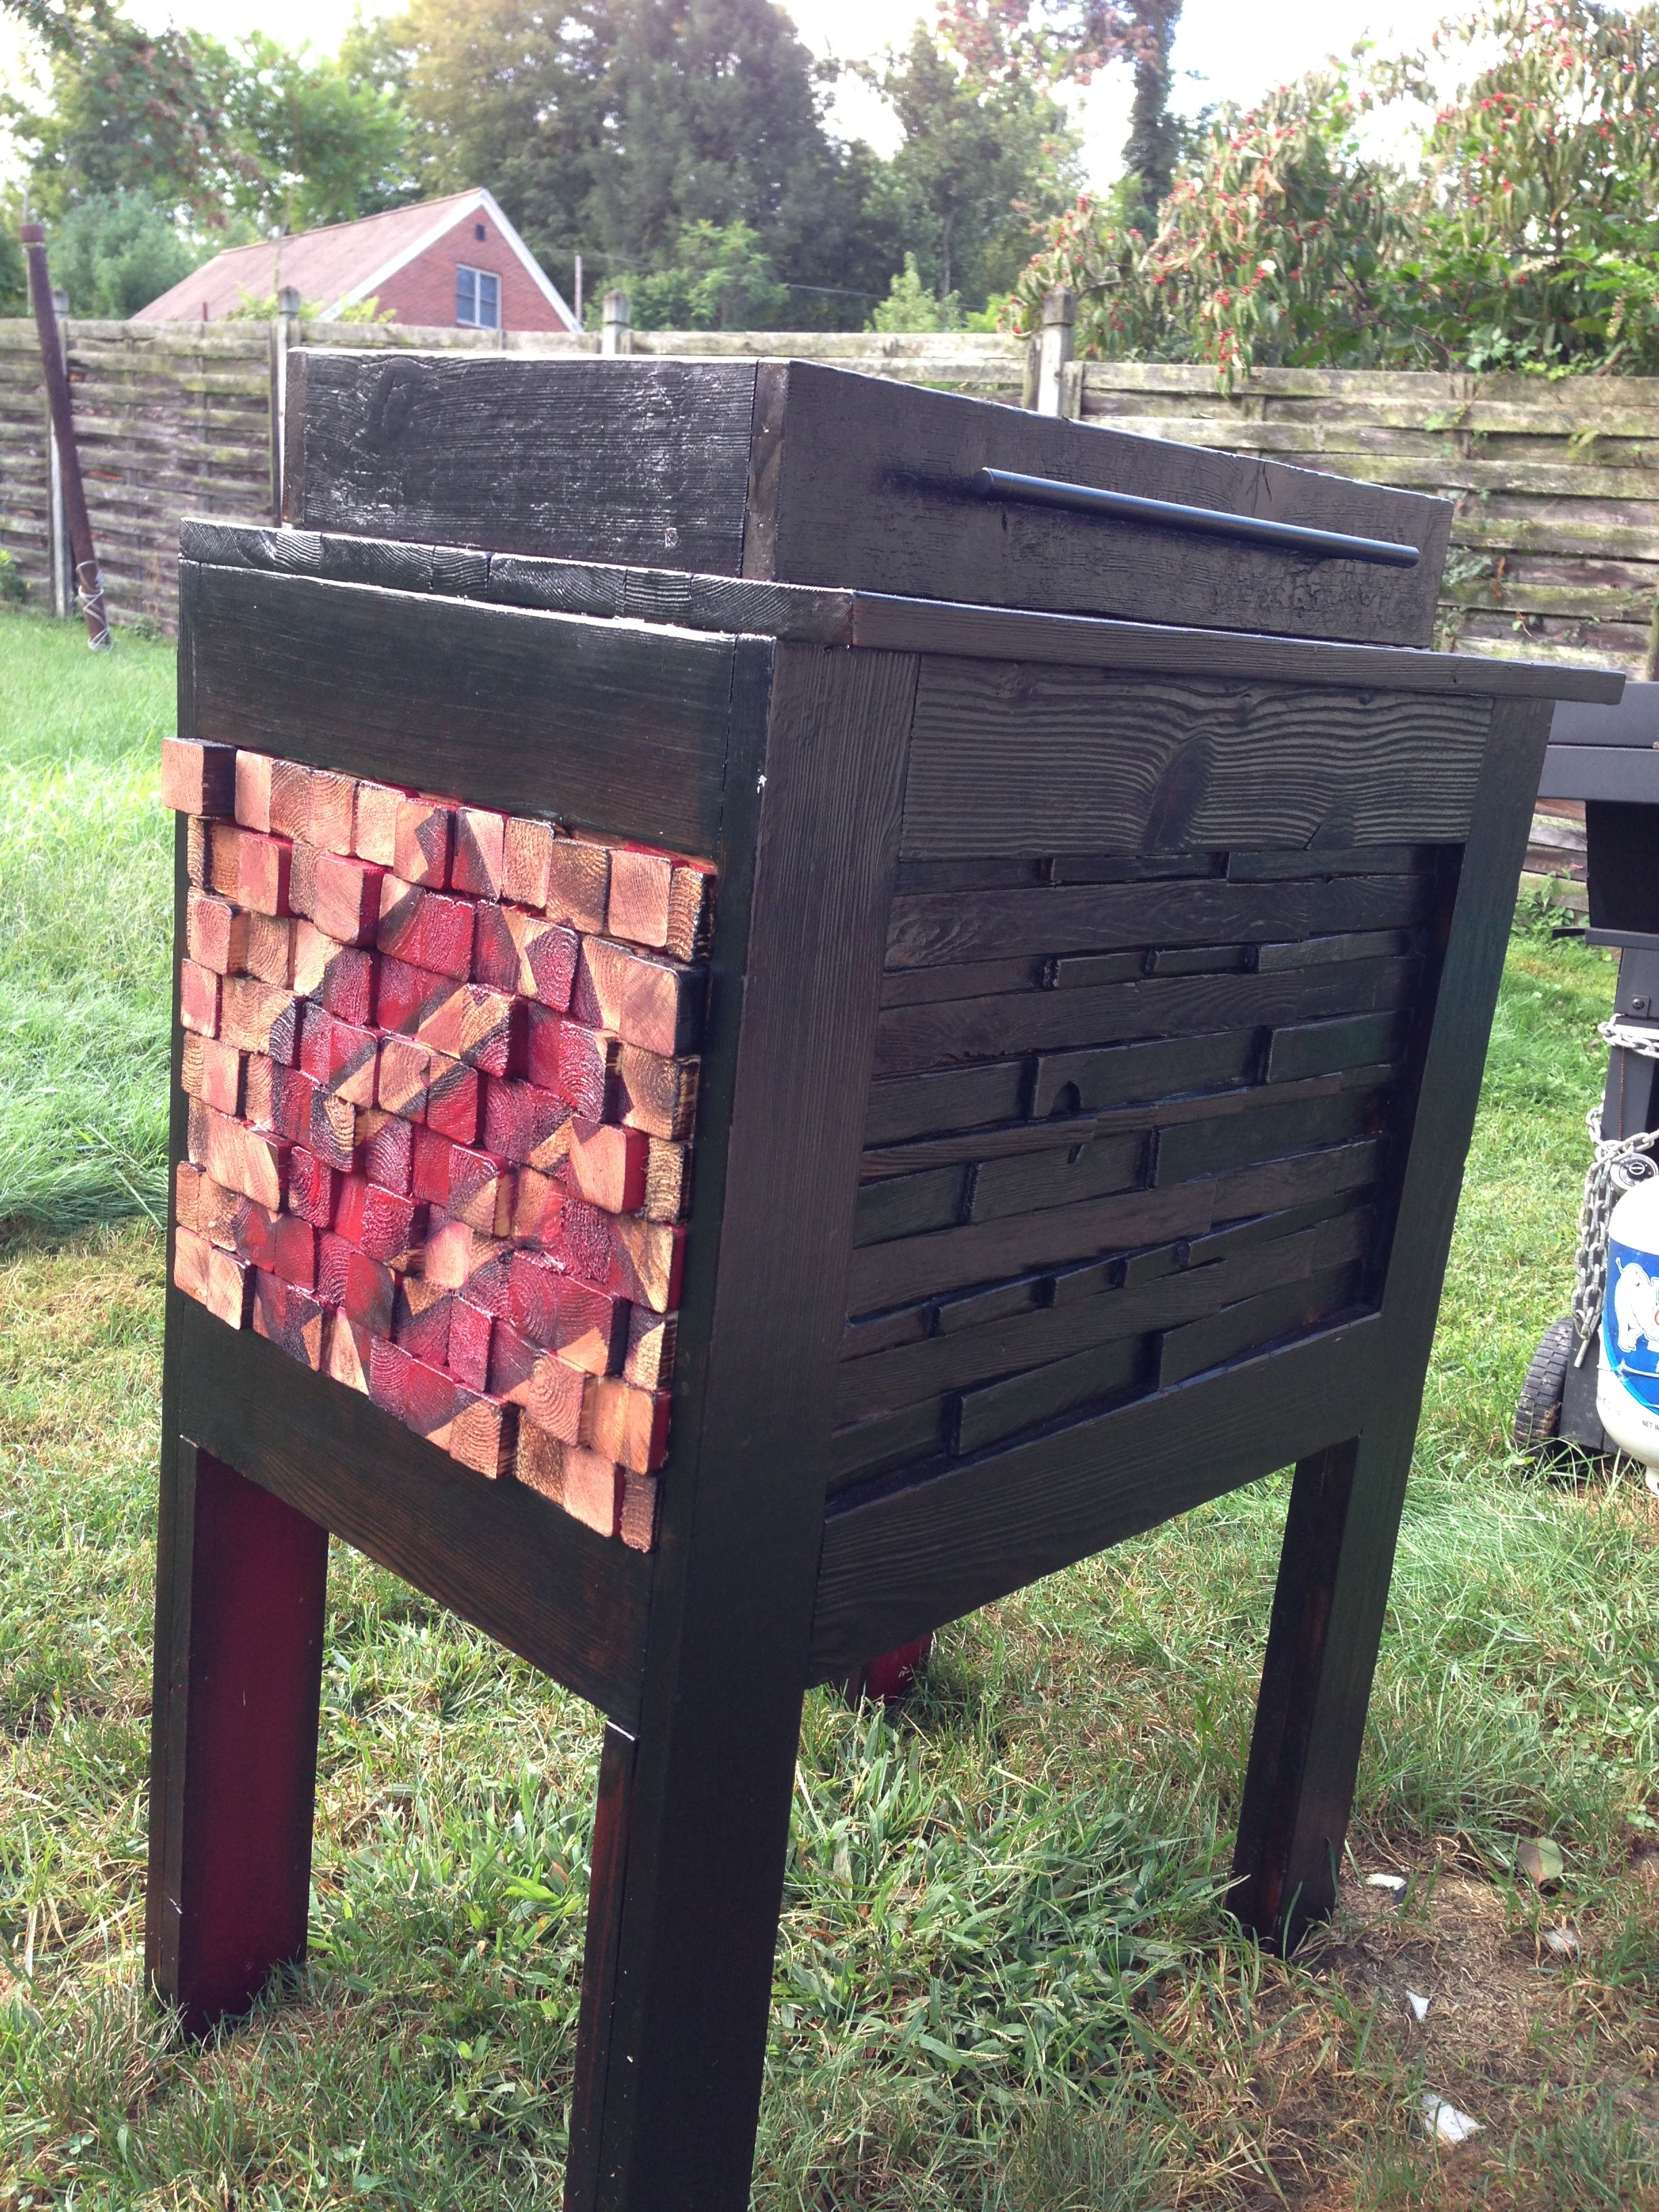 Cooler stand- Cedar burnt shou-sugi-ban style. Coated with outdoor polyurethane. Cedar shims on the front done the same way. 2x2s on the sides cut to different lengths. Of course I had to put an IU on there. Go Hoosiers!